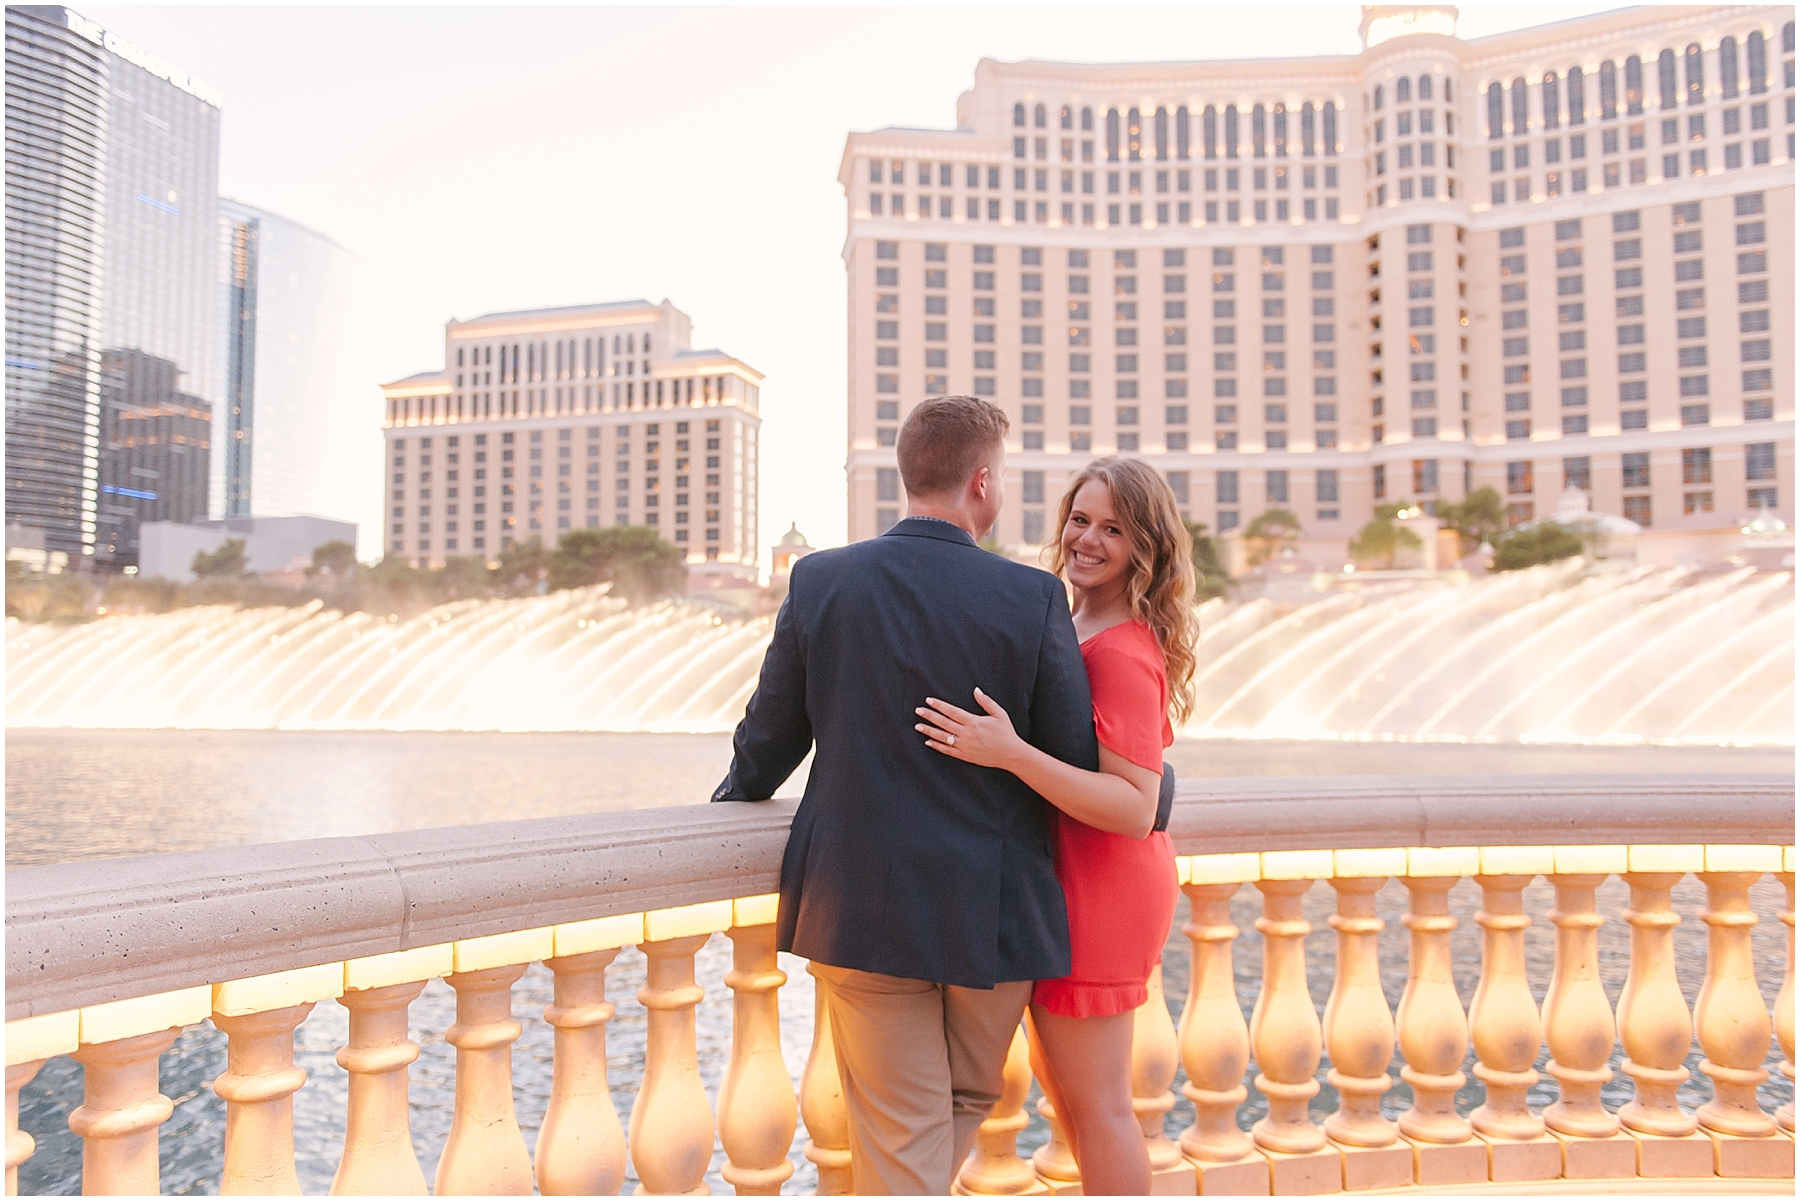 Las-vegas-proposal-photographer-blog-15.jpg